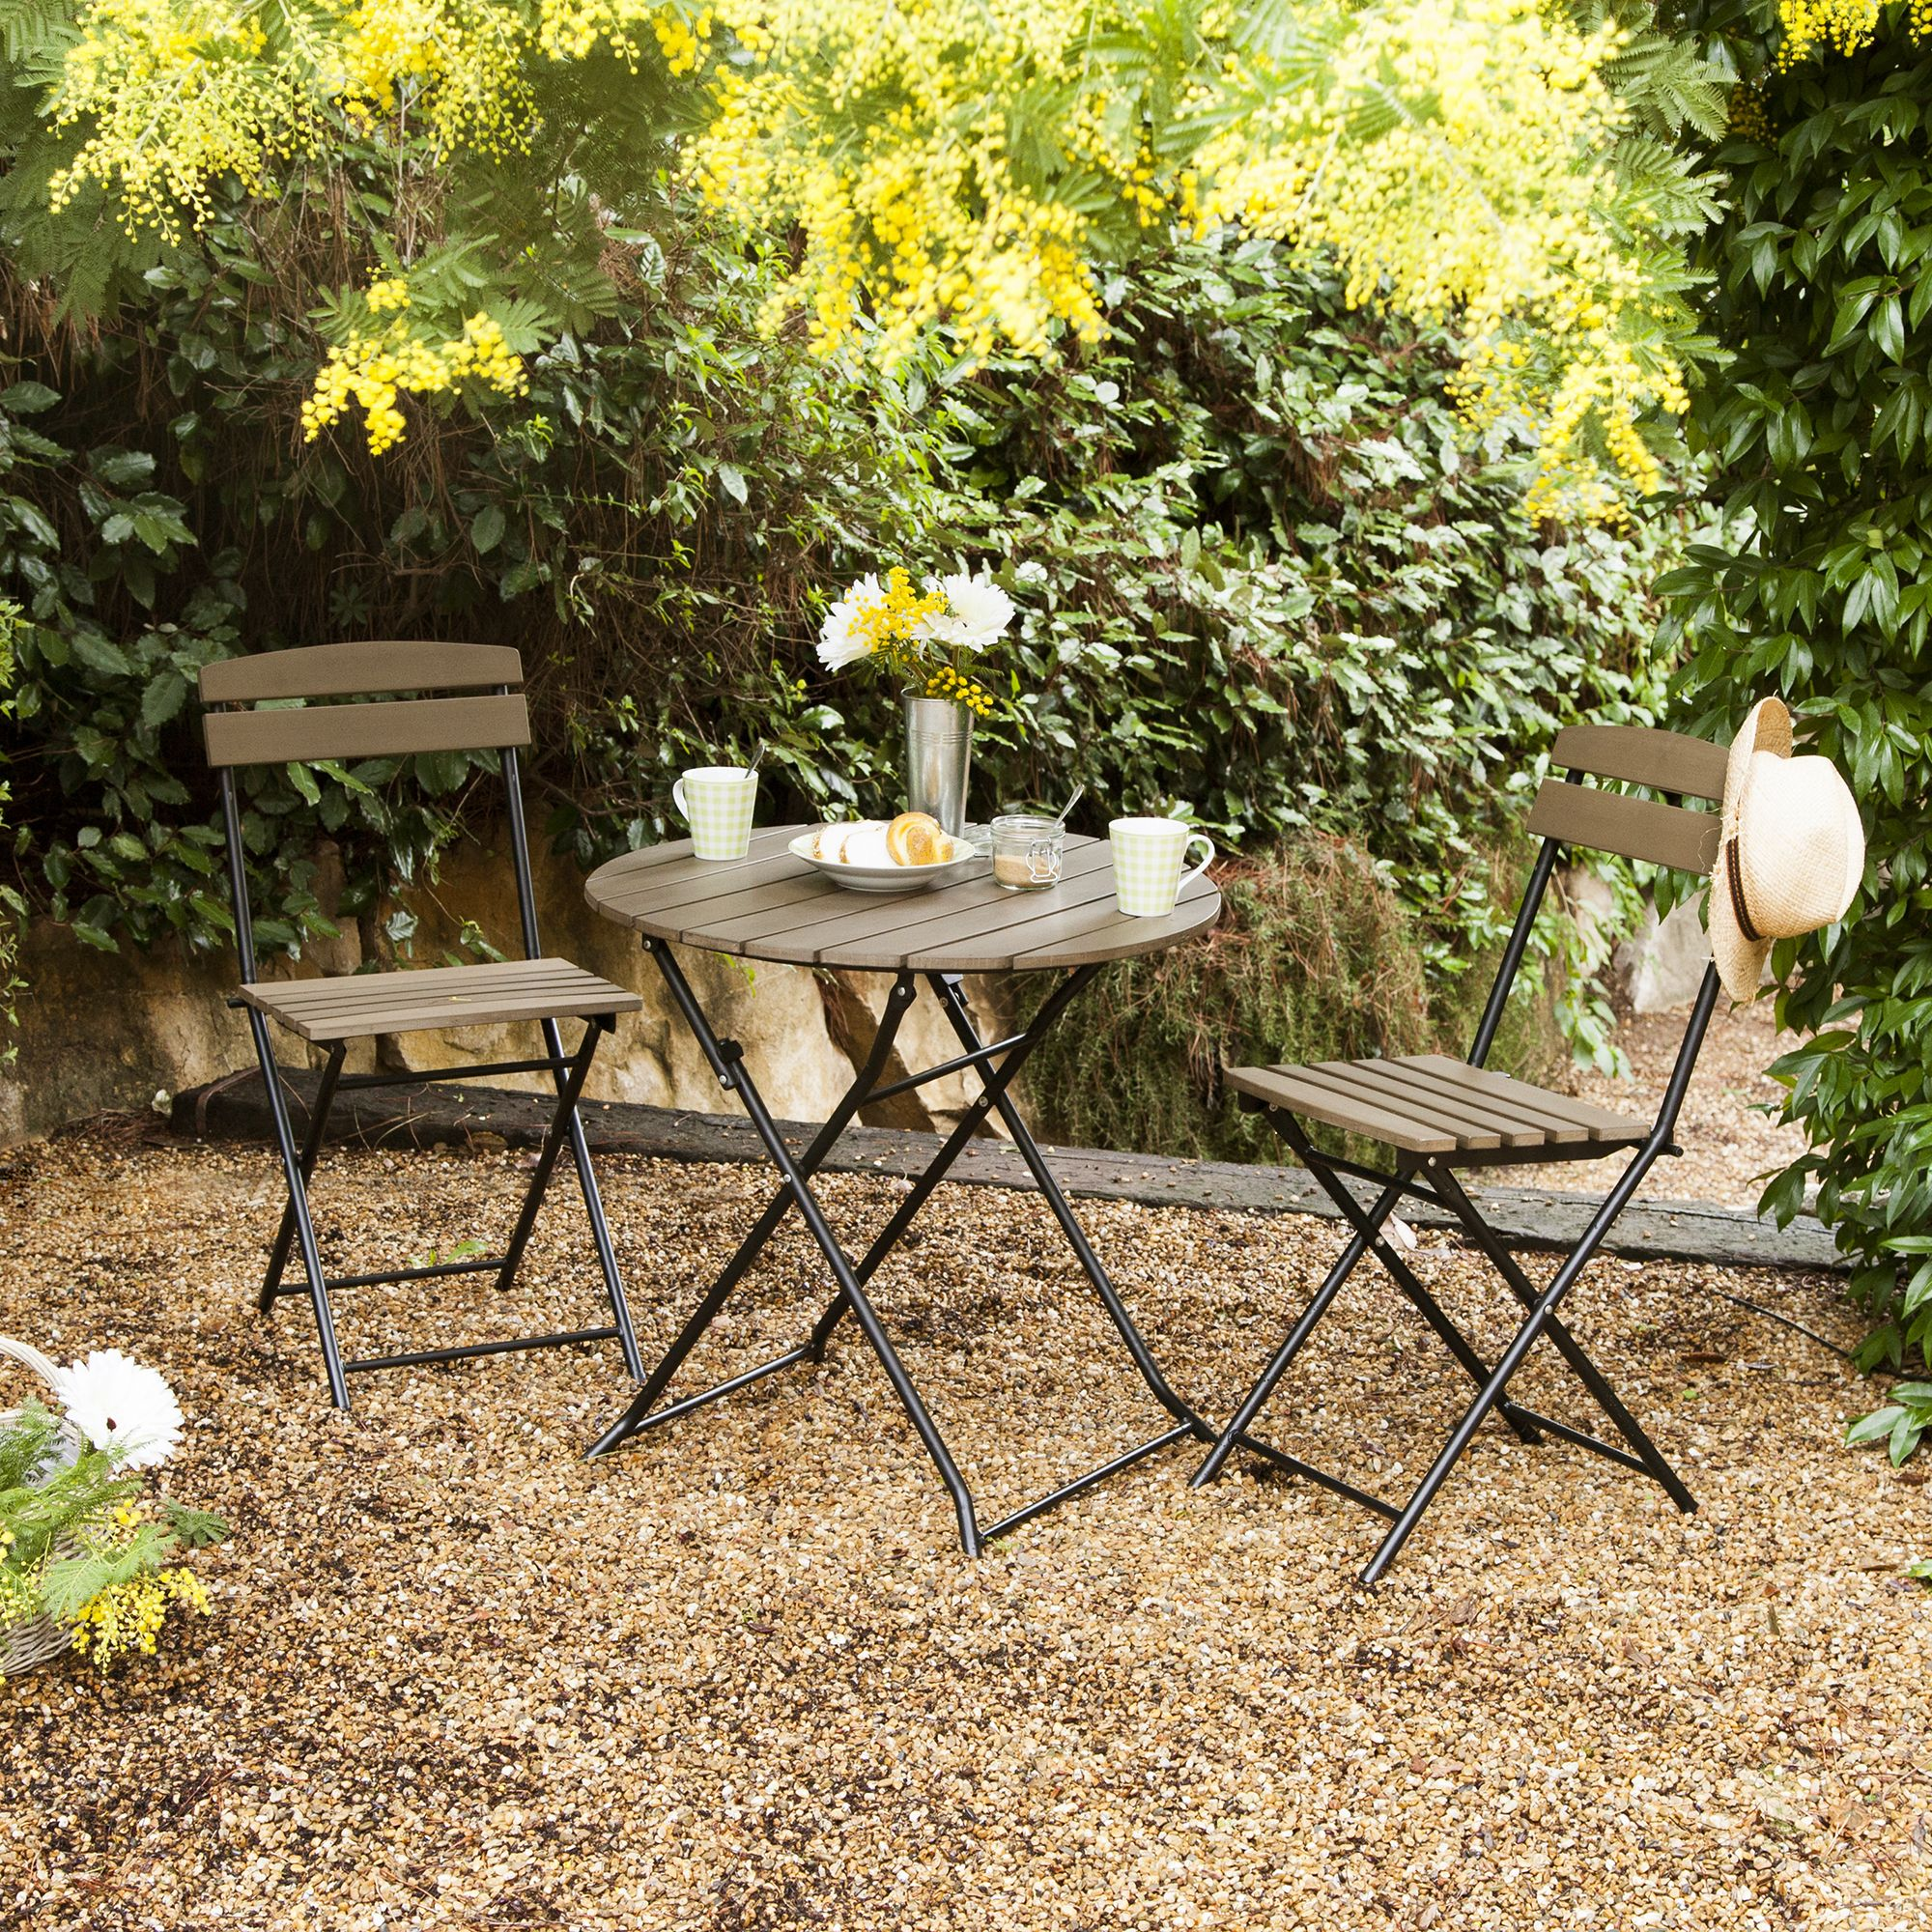 Salon jardin ou balcon pliant 2 : table ronde + 2 chaises ...